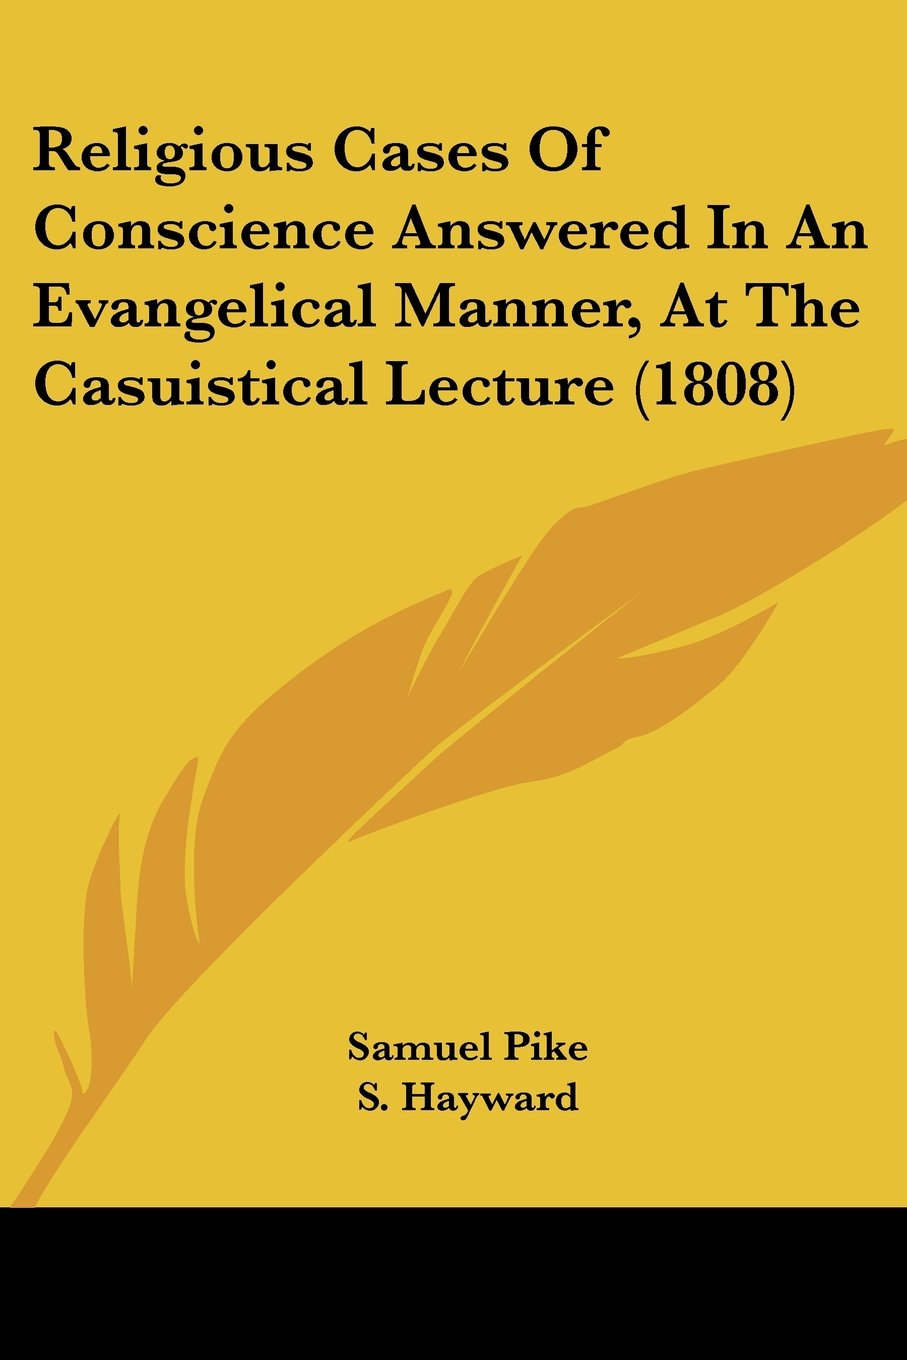 Download Religious Cases Of Conscience Answered In An Evangelical Manner, At The Casuistical Lecture (1808) pdf epub